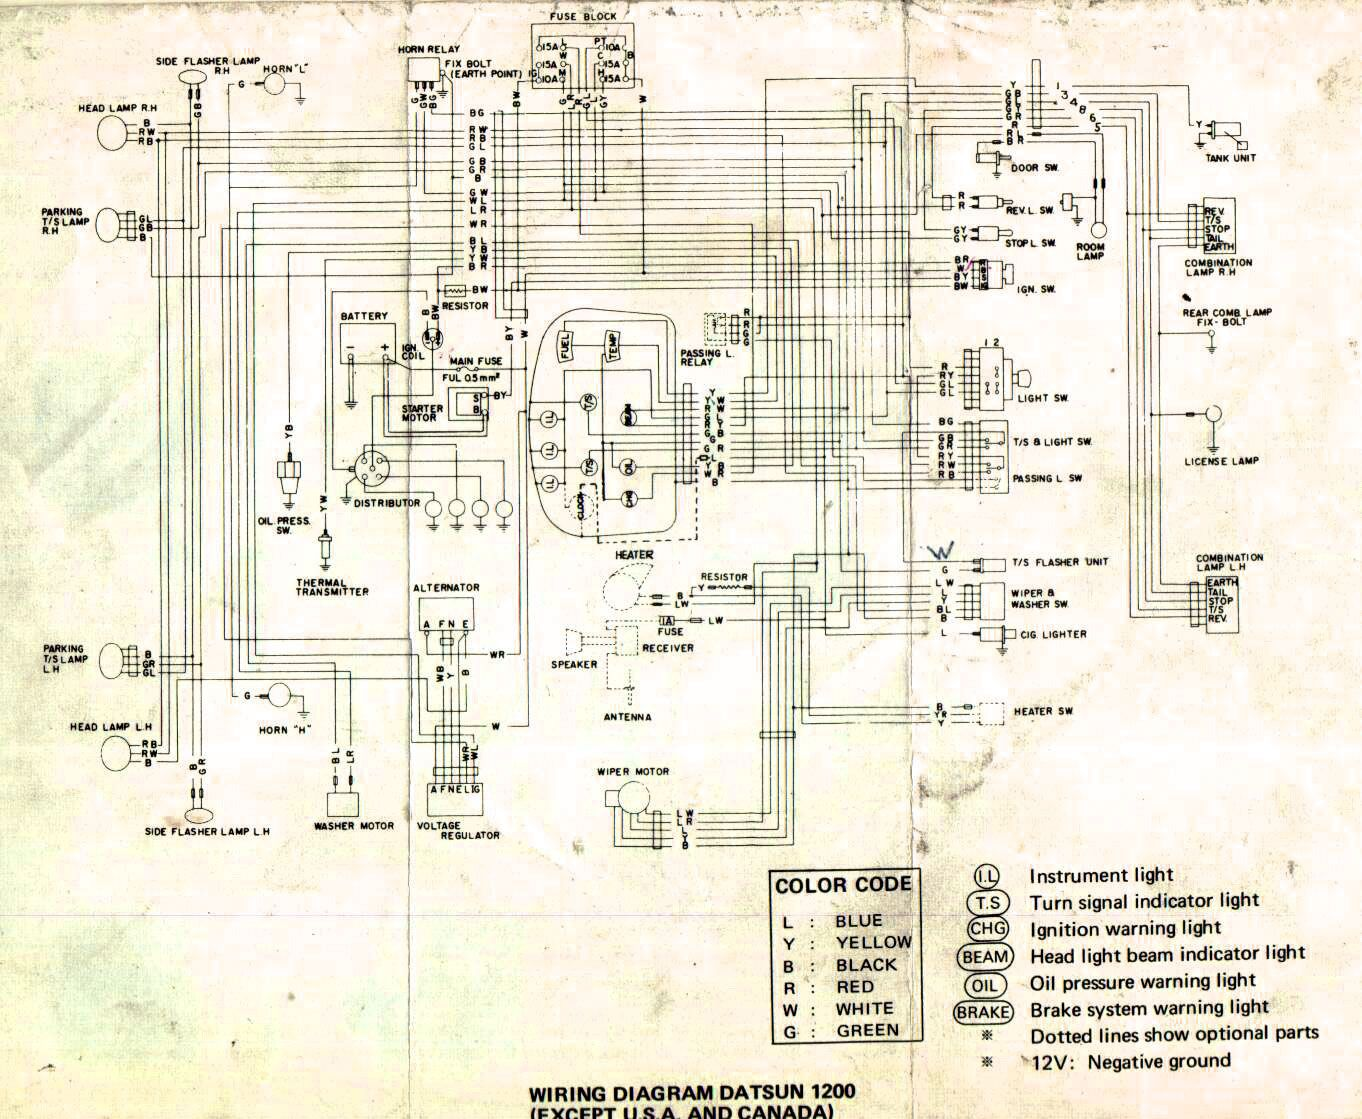 5f8debaef357497a71c98e8f31e42744 wiring diagram for nissan 1400 bakkie 8 nissan pinterest 1984 nissan 720 wiring diagram at soozxer.org